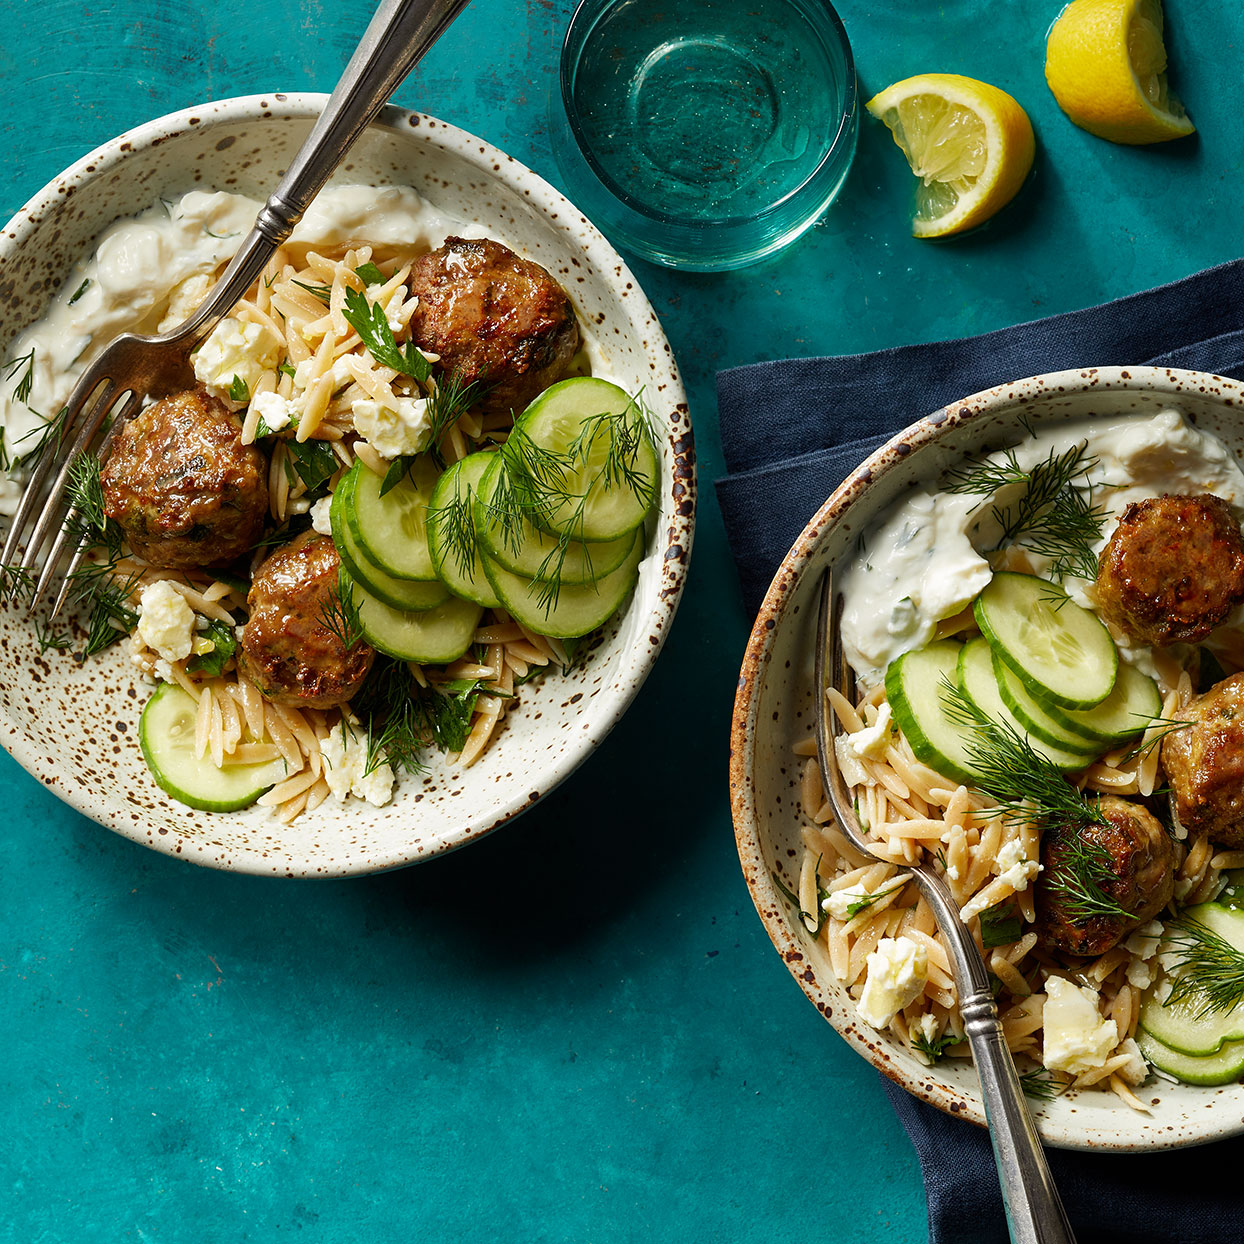 Greek-Meatballs-LemonGarlic-Orzo-BP-3927